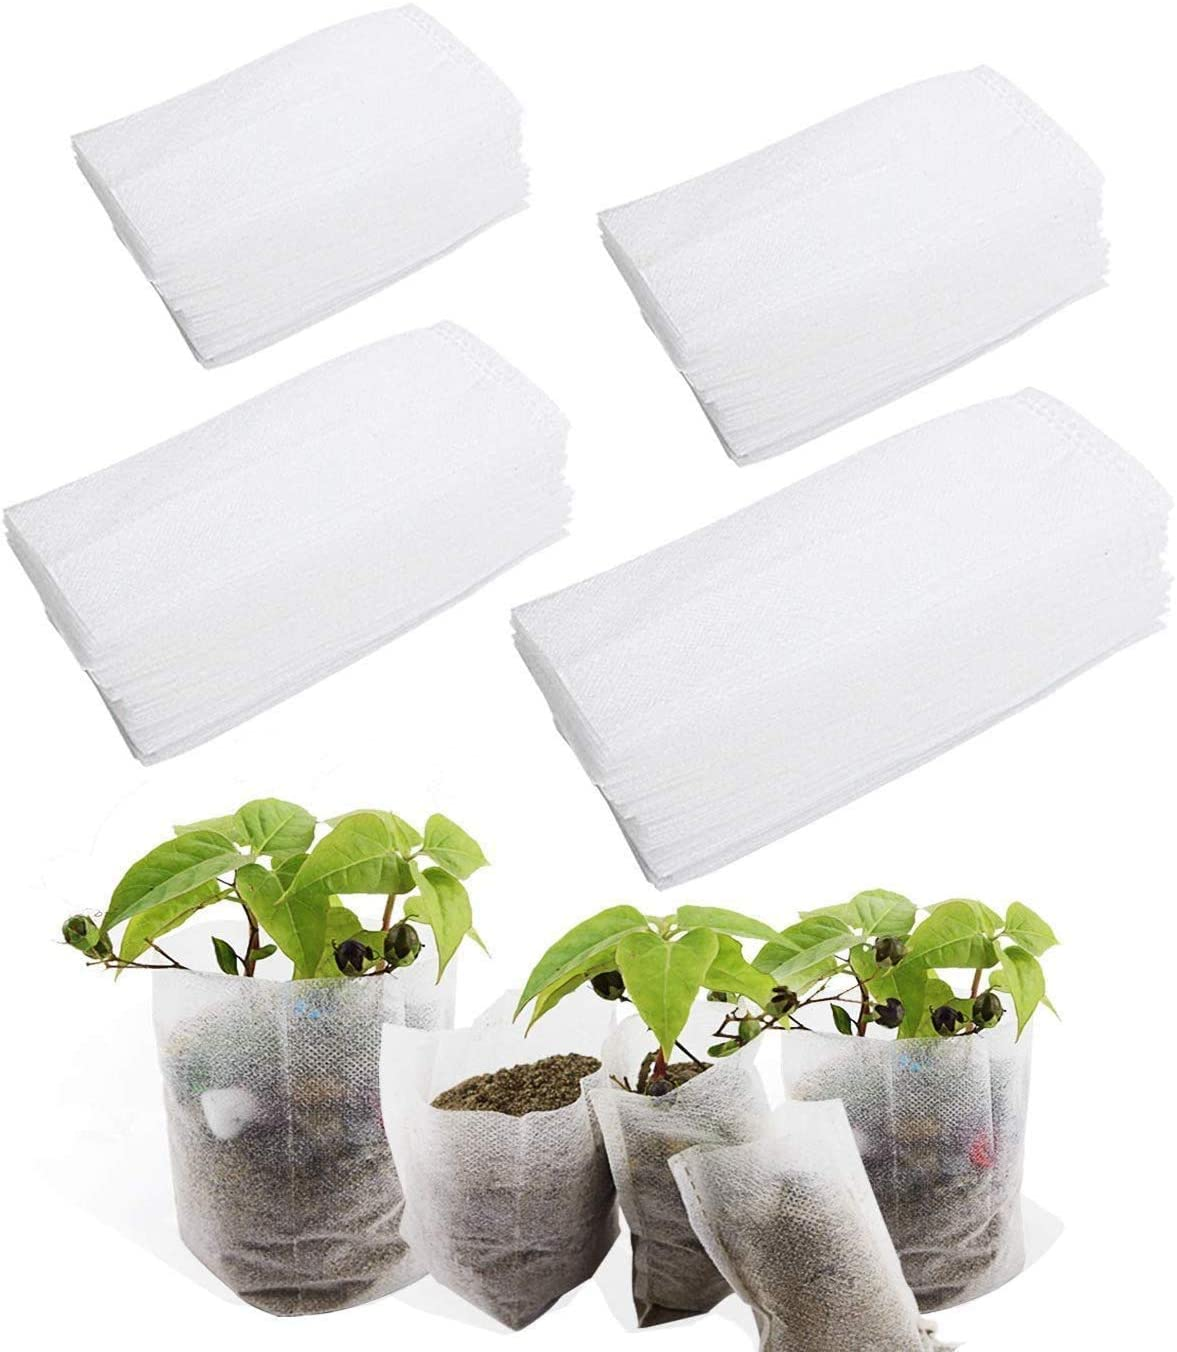 400 PCS 4 Size Biodegradable Non-Woven Nursery Bags Plant Grow Bags Fabric Seedling Pots Plants Pouch Home Garden Supply